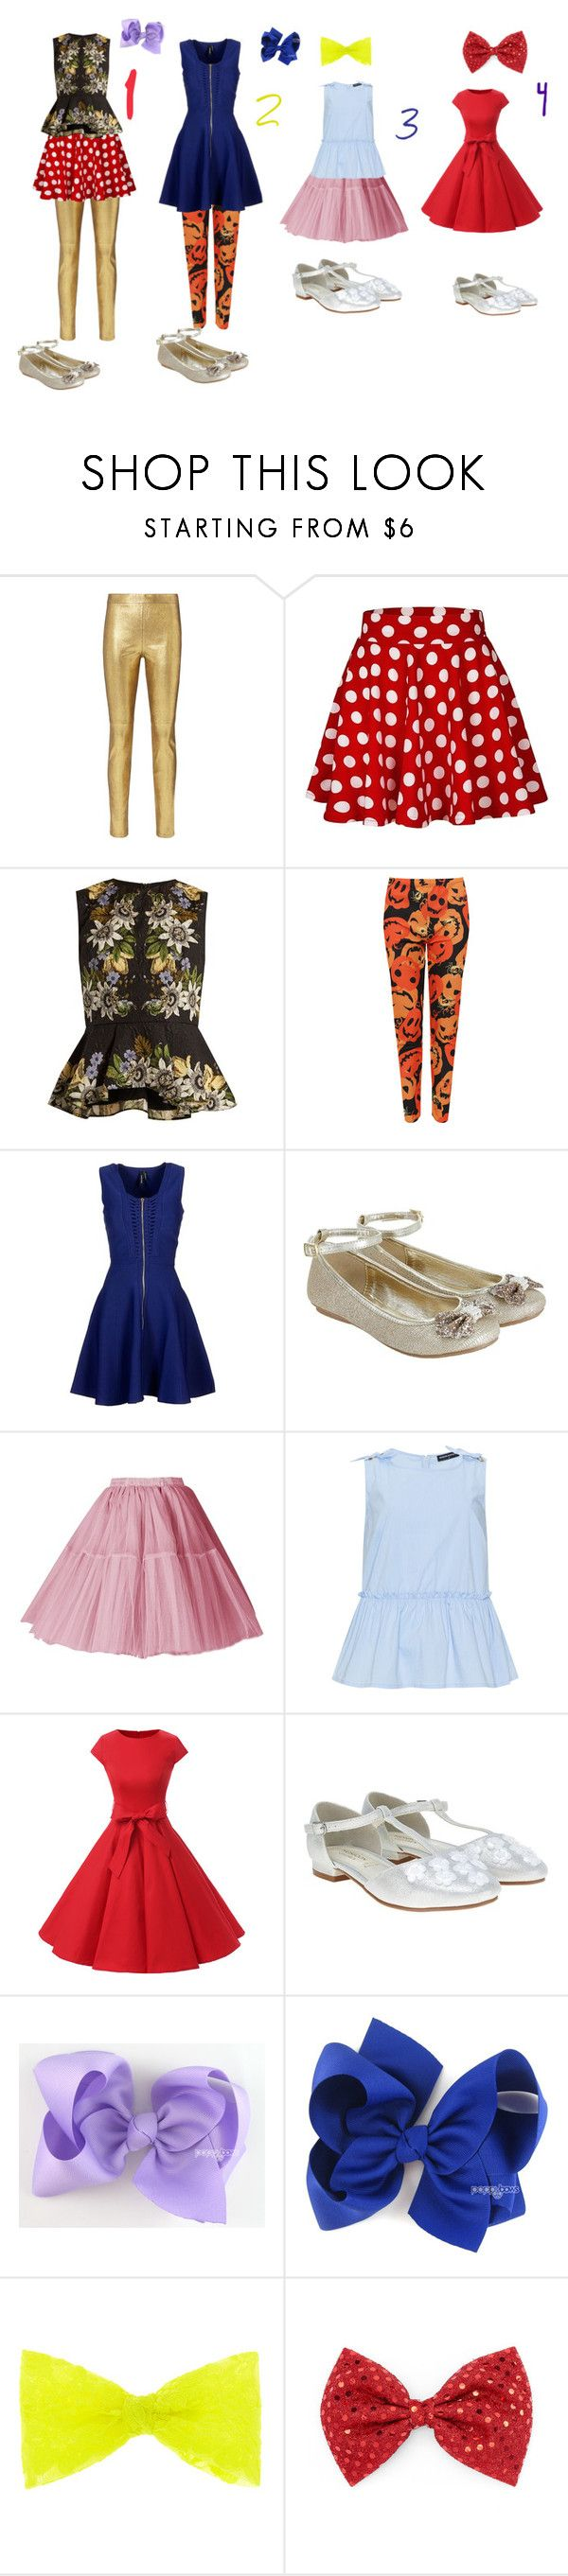 """""""Which Girly outfit is your favorite?"""" by sierra-ivy on Polyvore featuring Intermix, Erdem, WearAll, Marciano, Monsoon and Manon Baptiste"""